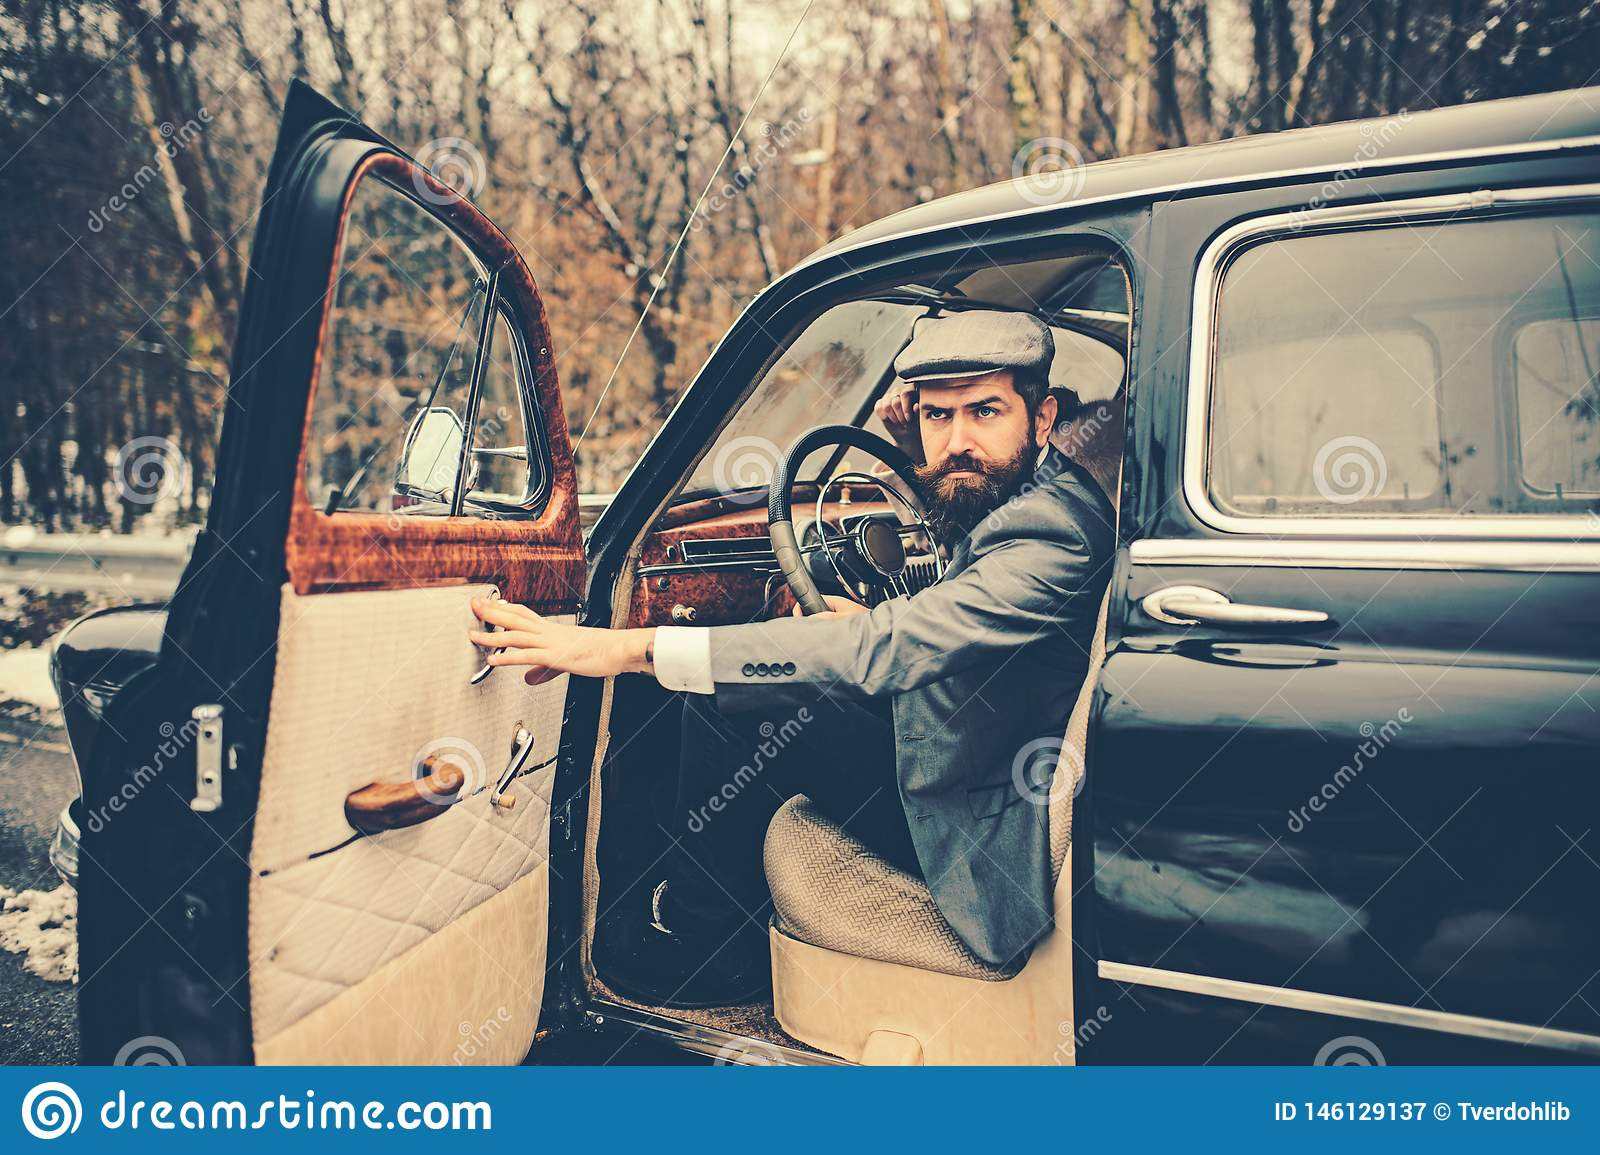 Travel and business trip or hitch hiking. Escort man or security guard. Call boy in vintage auto. Bearded man in car